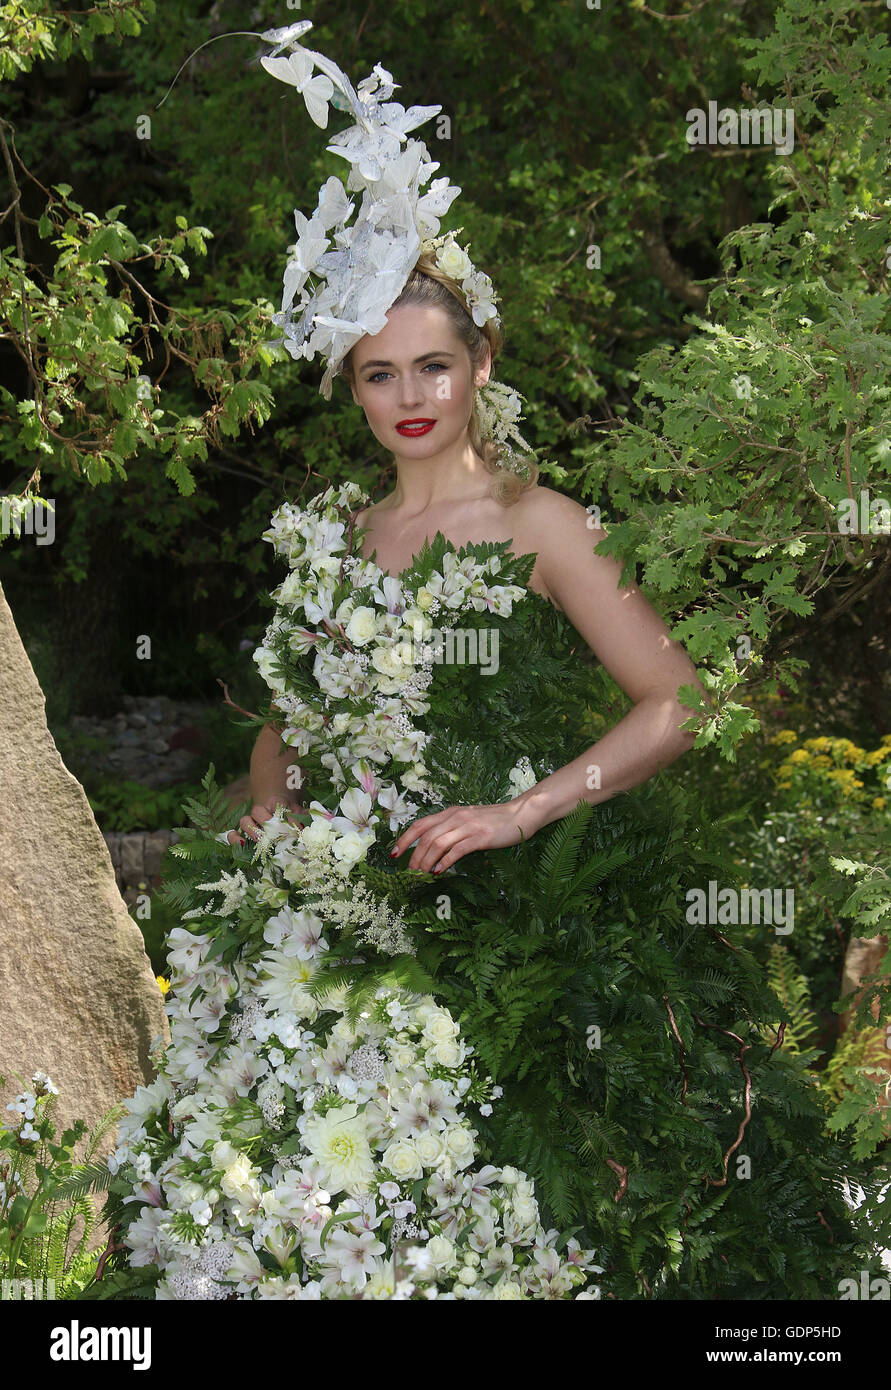 May 23, 2016 - General Views at Chelsea Flower Show 2016 in London, UK. - Stock Image